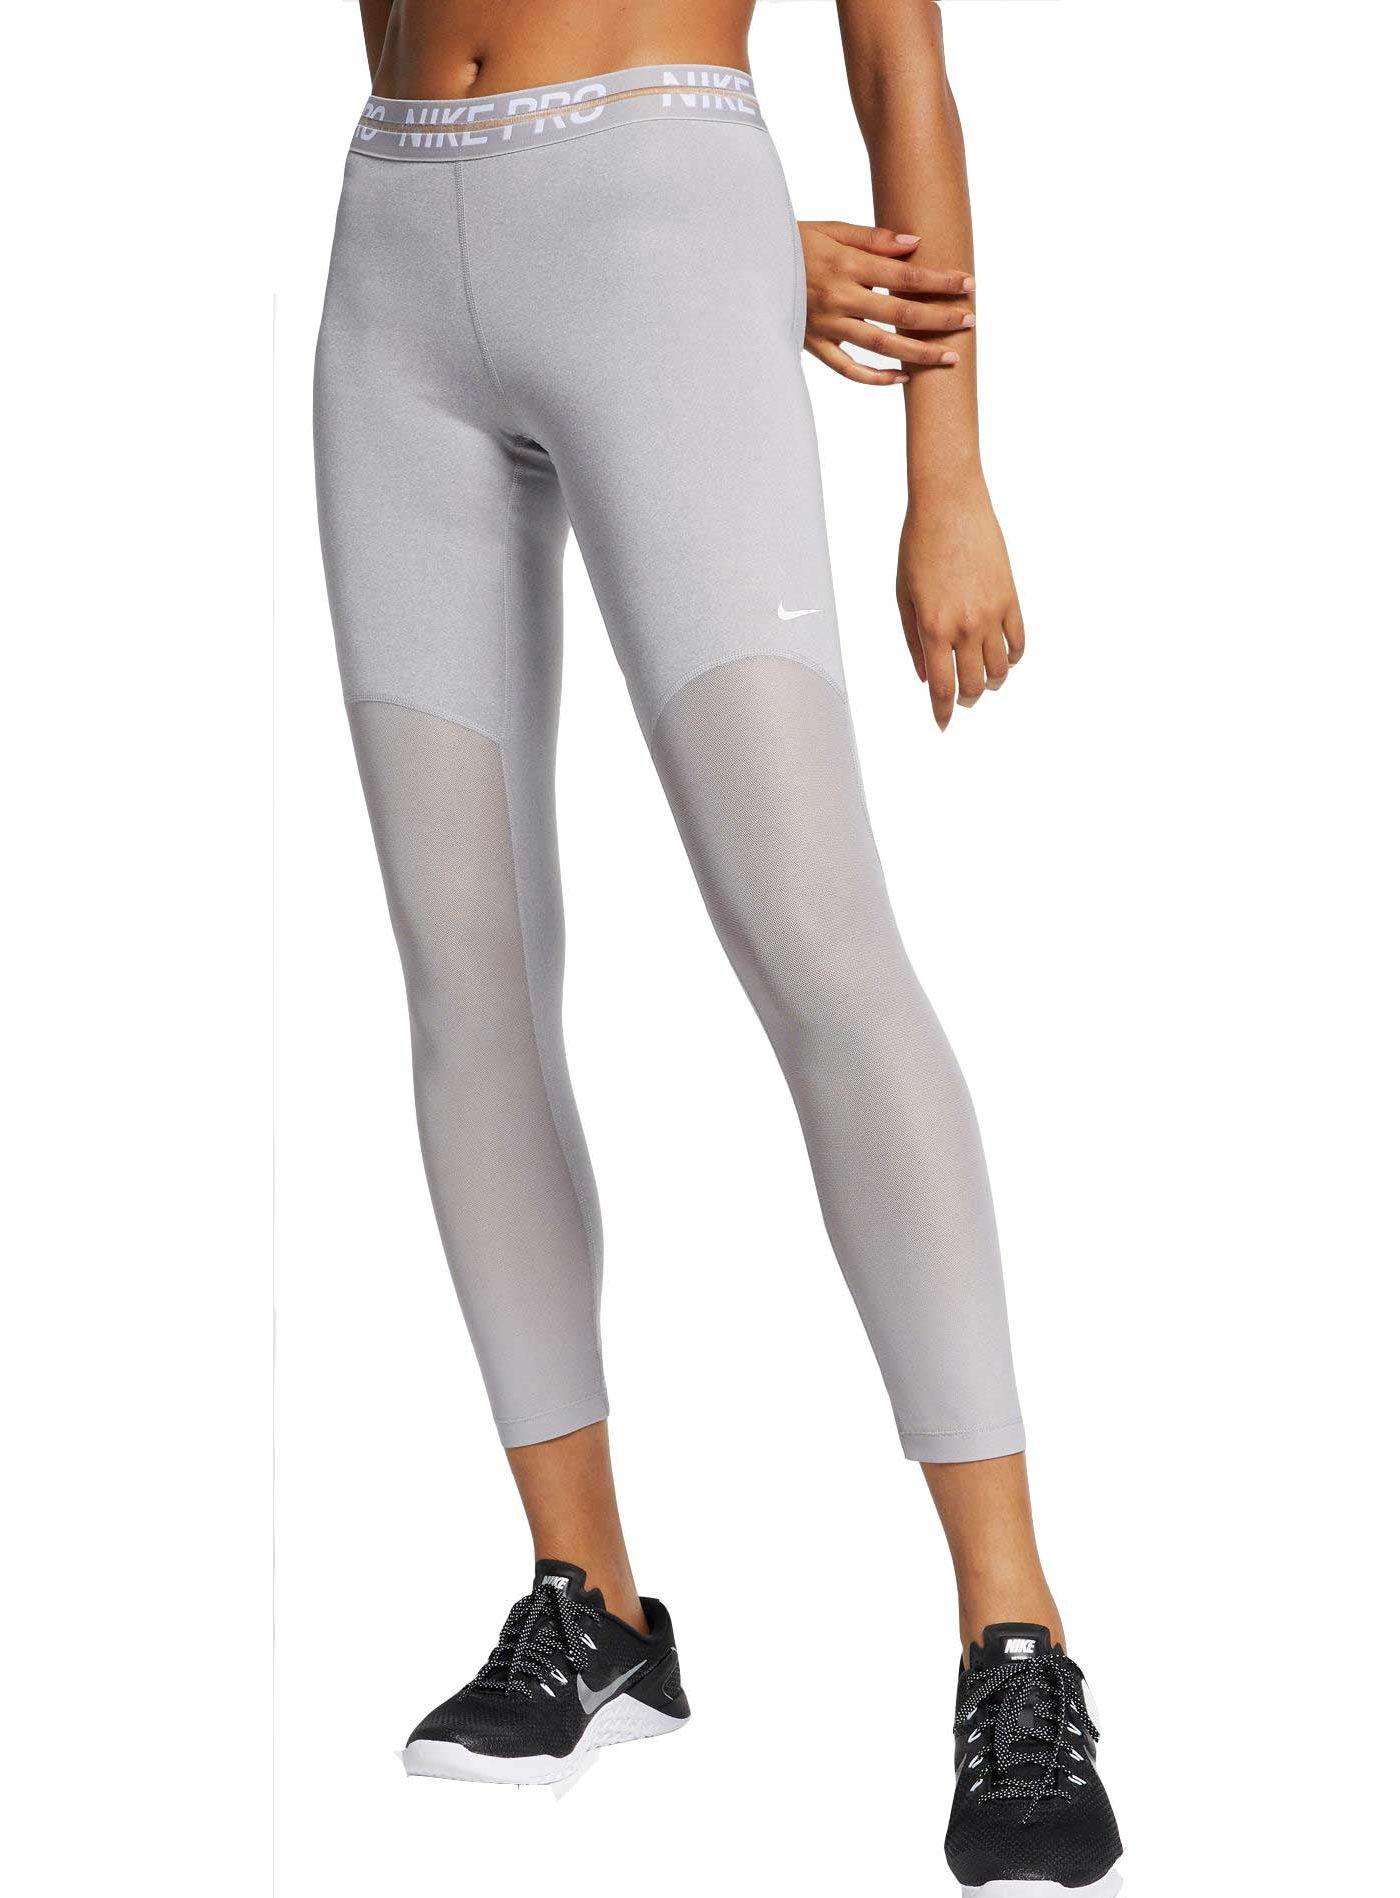 Women's Nike Pro Heatherized 7/8 Leggings